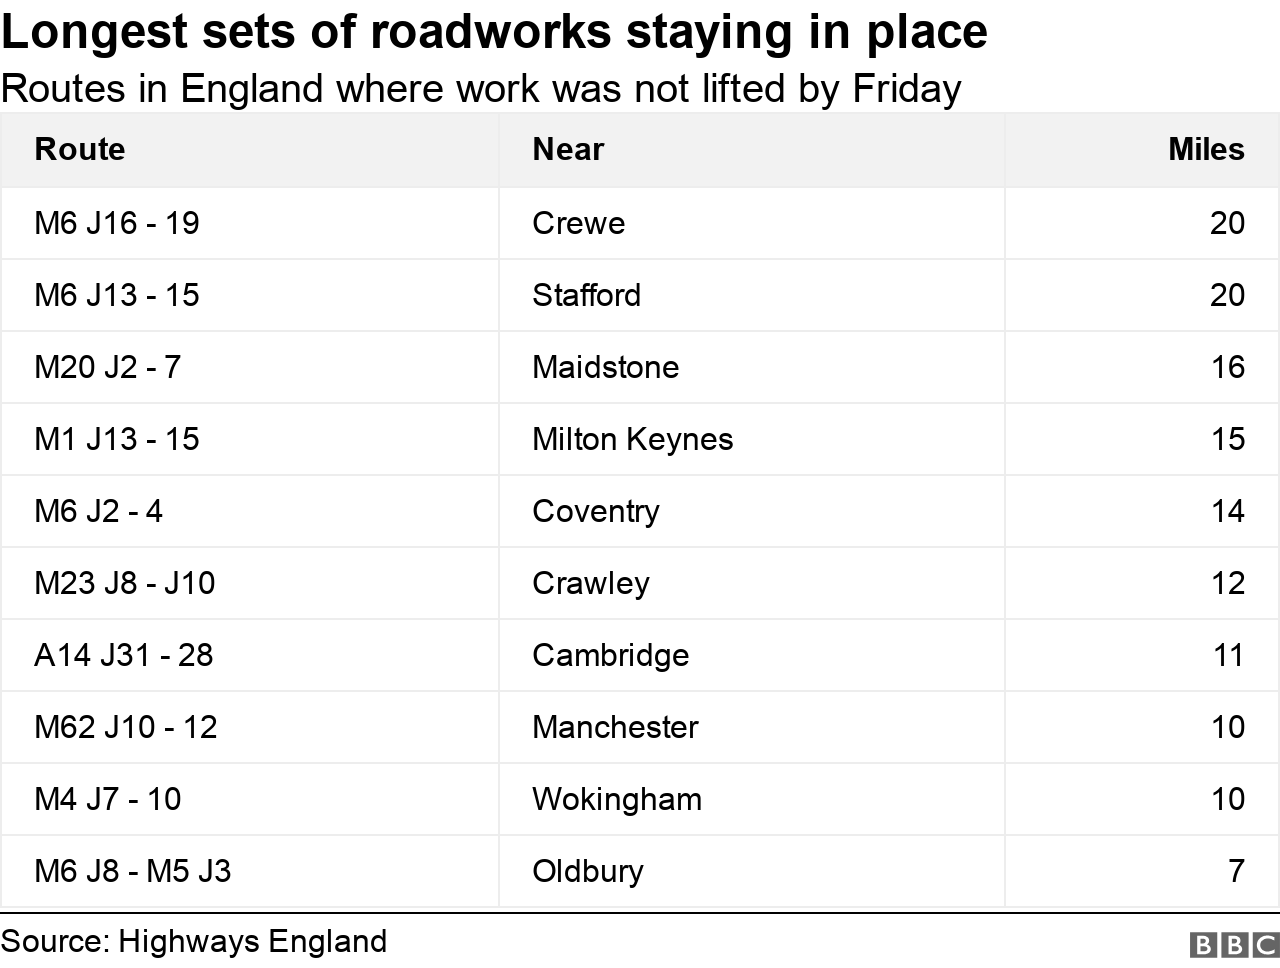 Table showing longest sets of roadworks staying in place